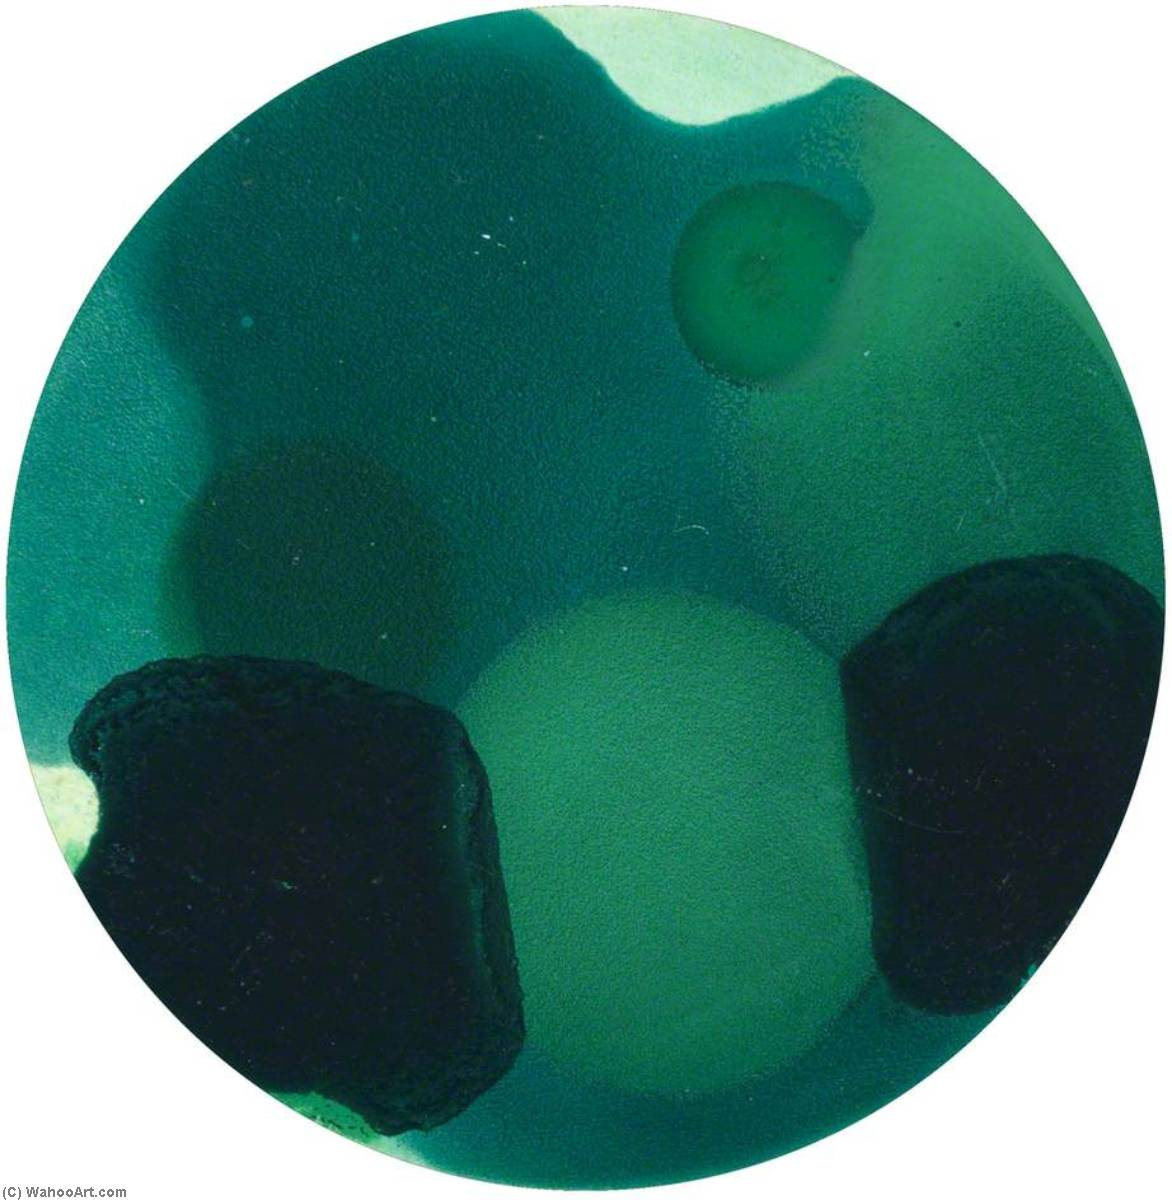 Wikioo.org - The Encyclopedia of Fine Arts - Painting, Artwork by Liza Gough Daniels - Different Shades of Green (2 of 6)